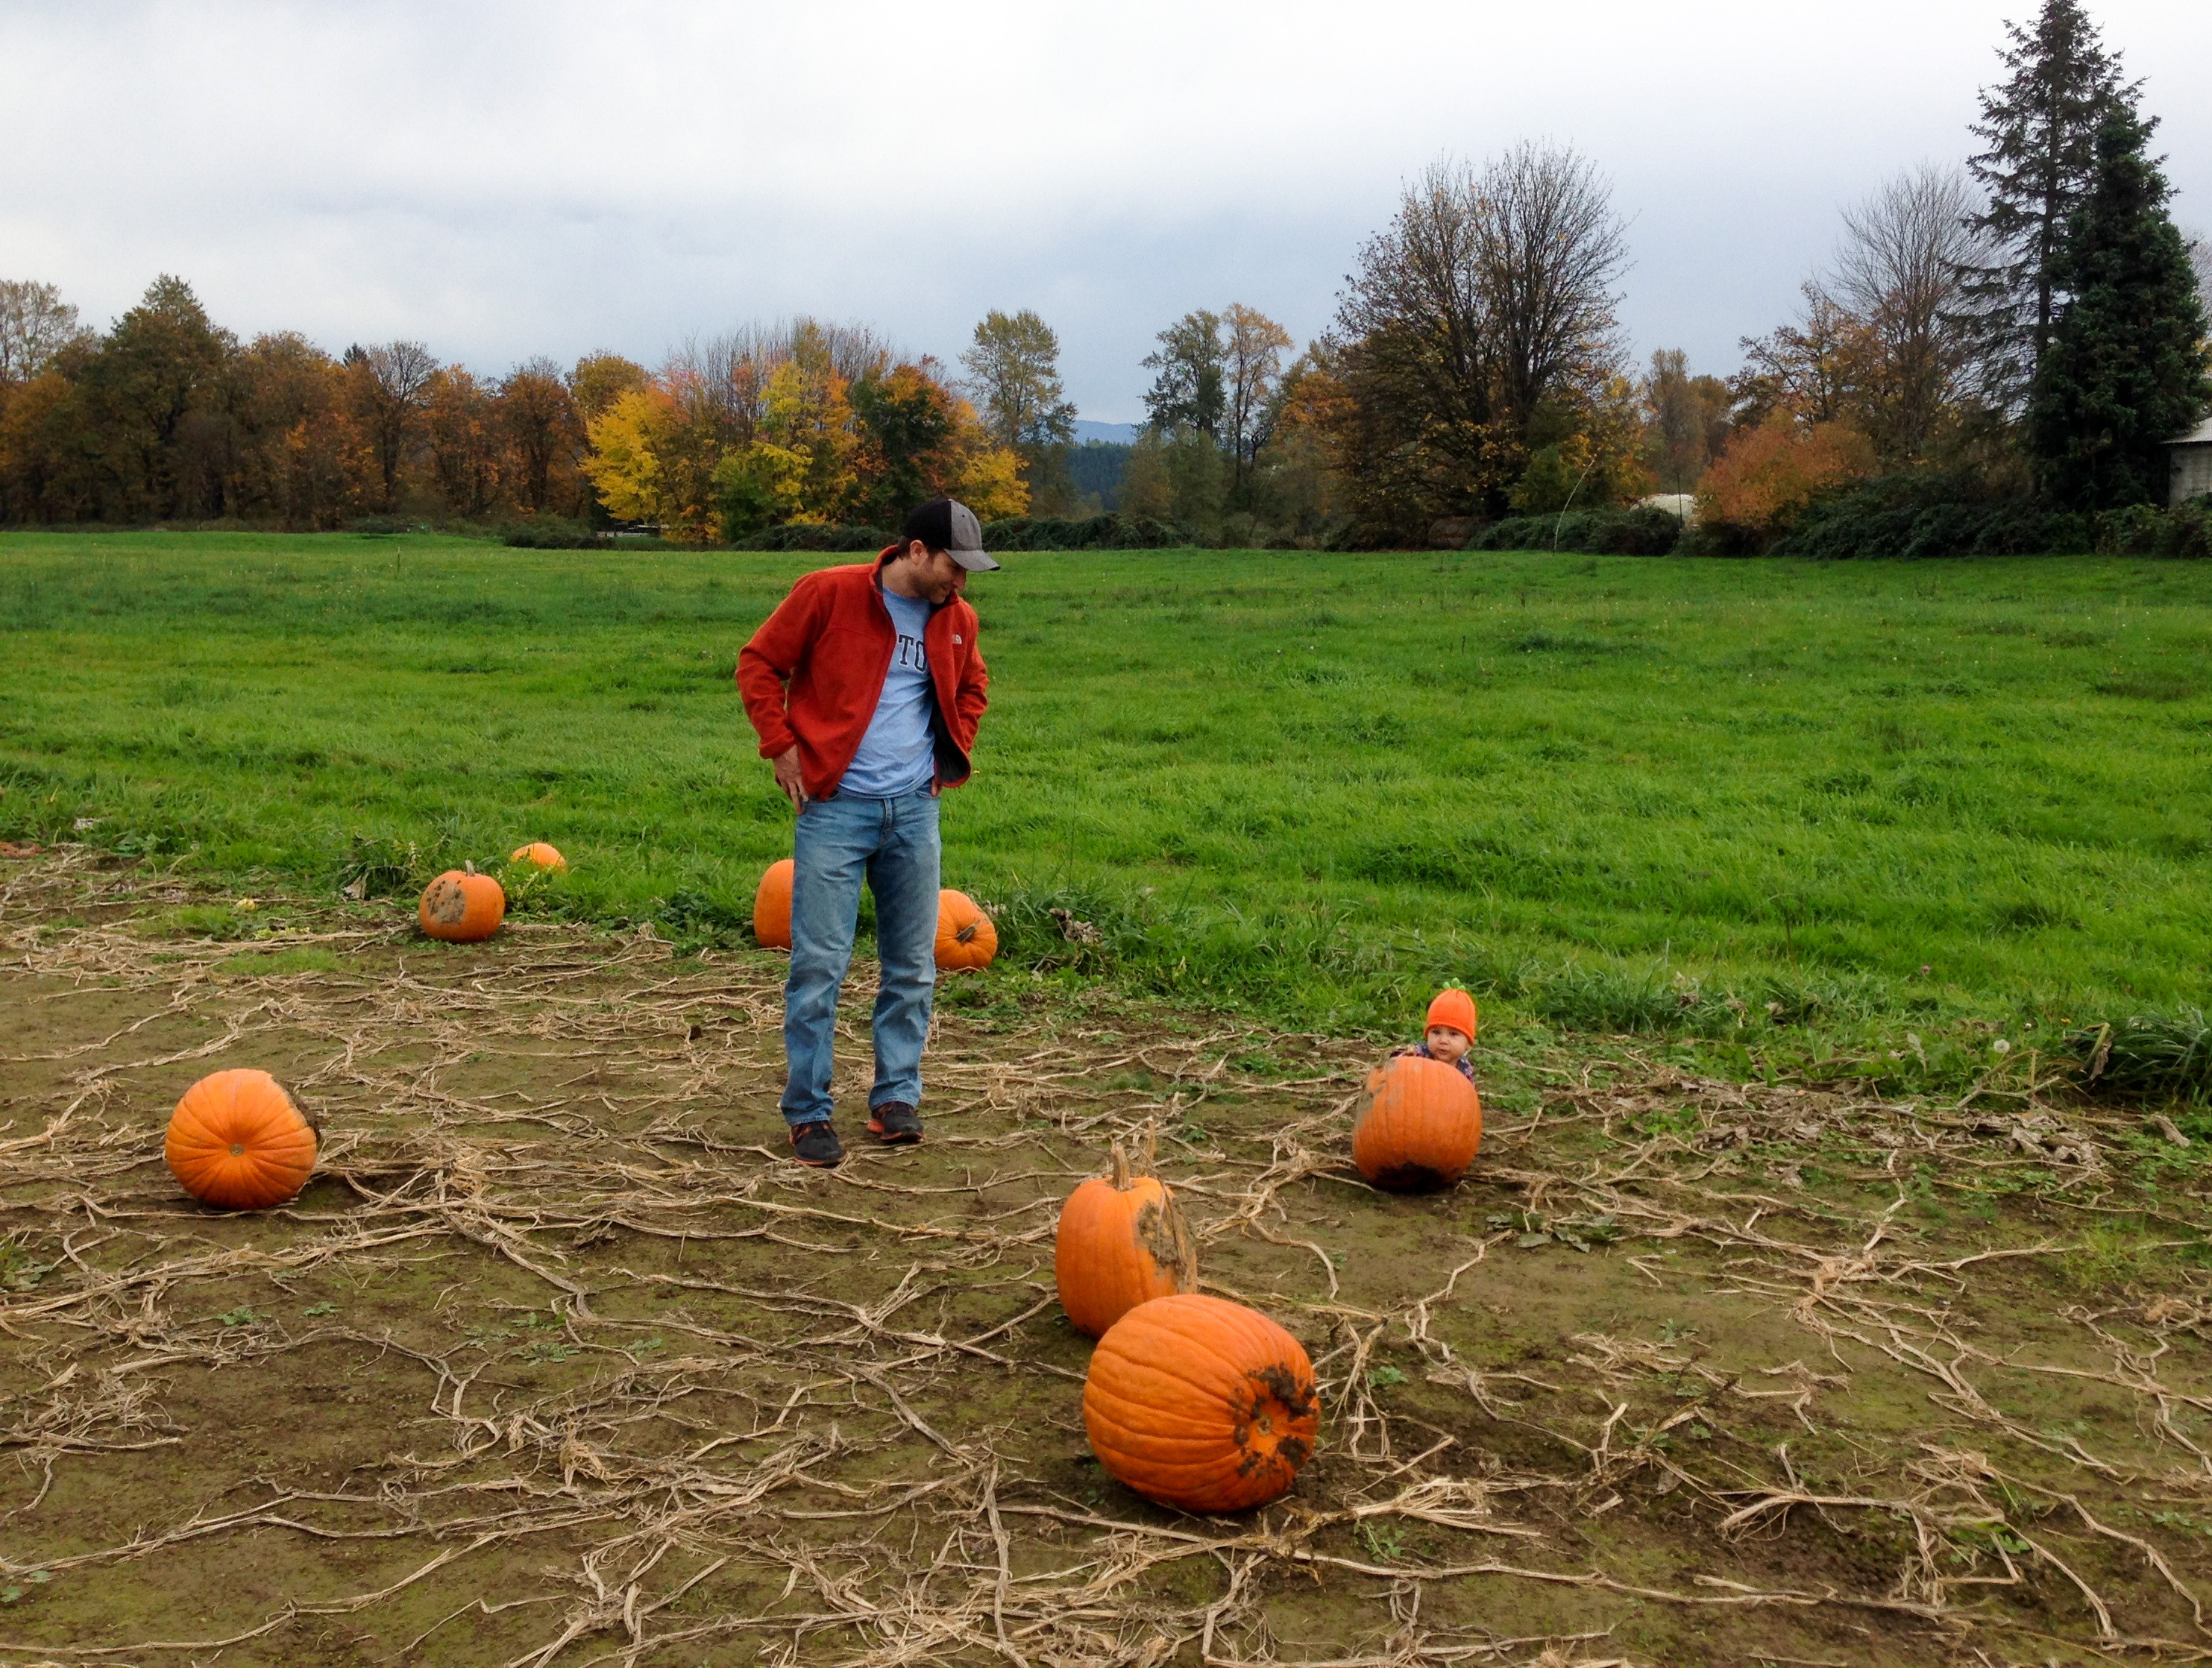 One of my faves from last year's pumpkin patch excursion. Where's Lulu?